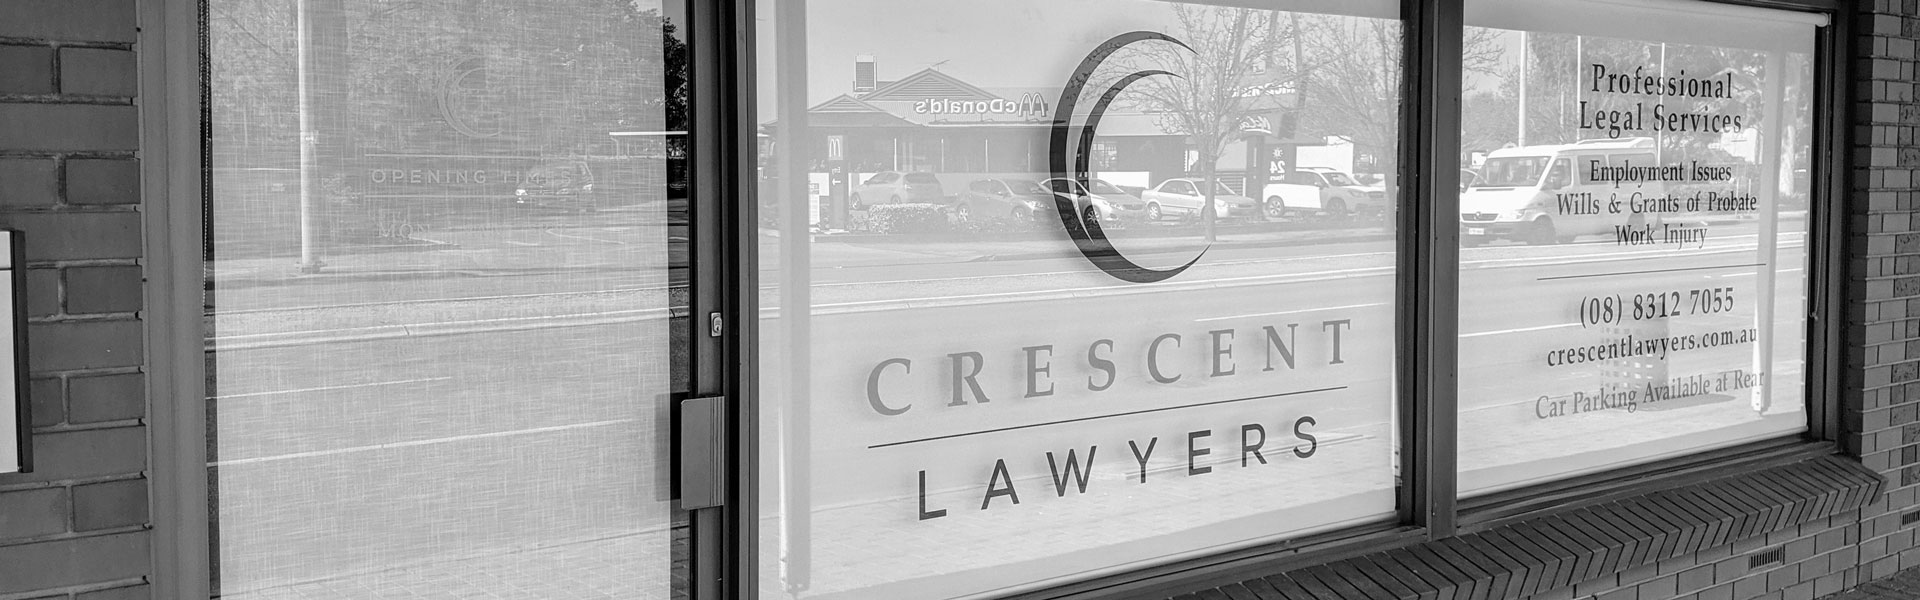 Crescent Lawyers Office